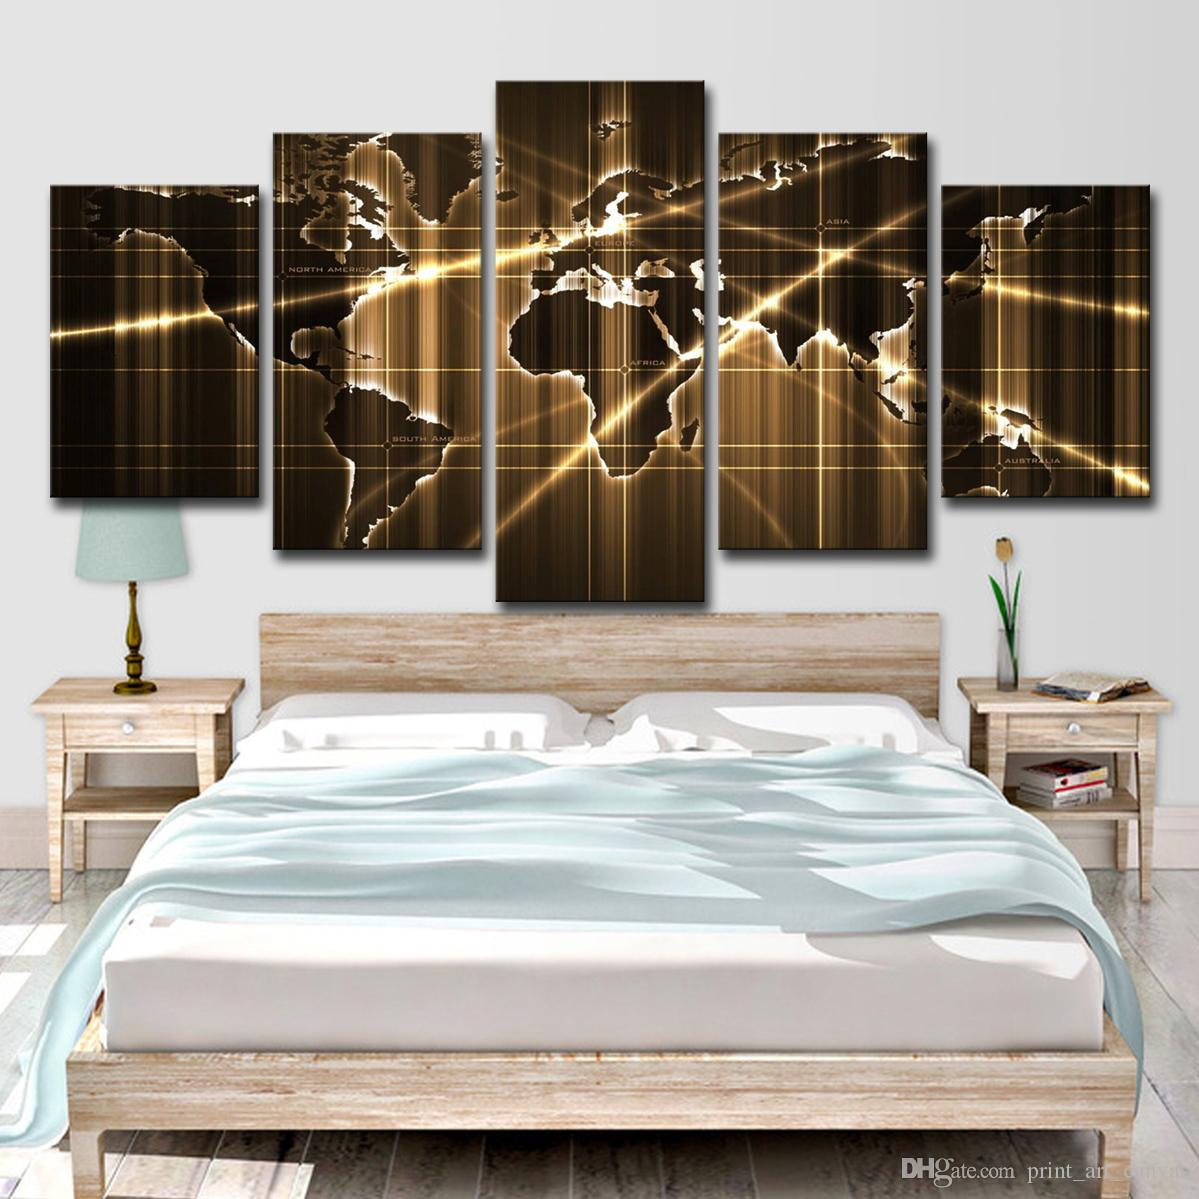 Office wall prints Office Space 2019 Modern Canvas Hd Prints Poster Office Wall Art Abstract Pictures World Map Paintings Living Room Home Decor From Printartcanvas 1641 Dhgatecom Dhgate 2019 Modern Canvas Hd Prints Poster Office Wall Art Abstract